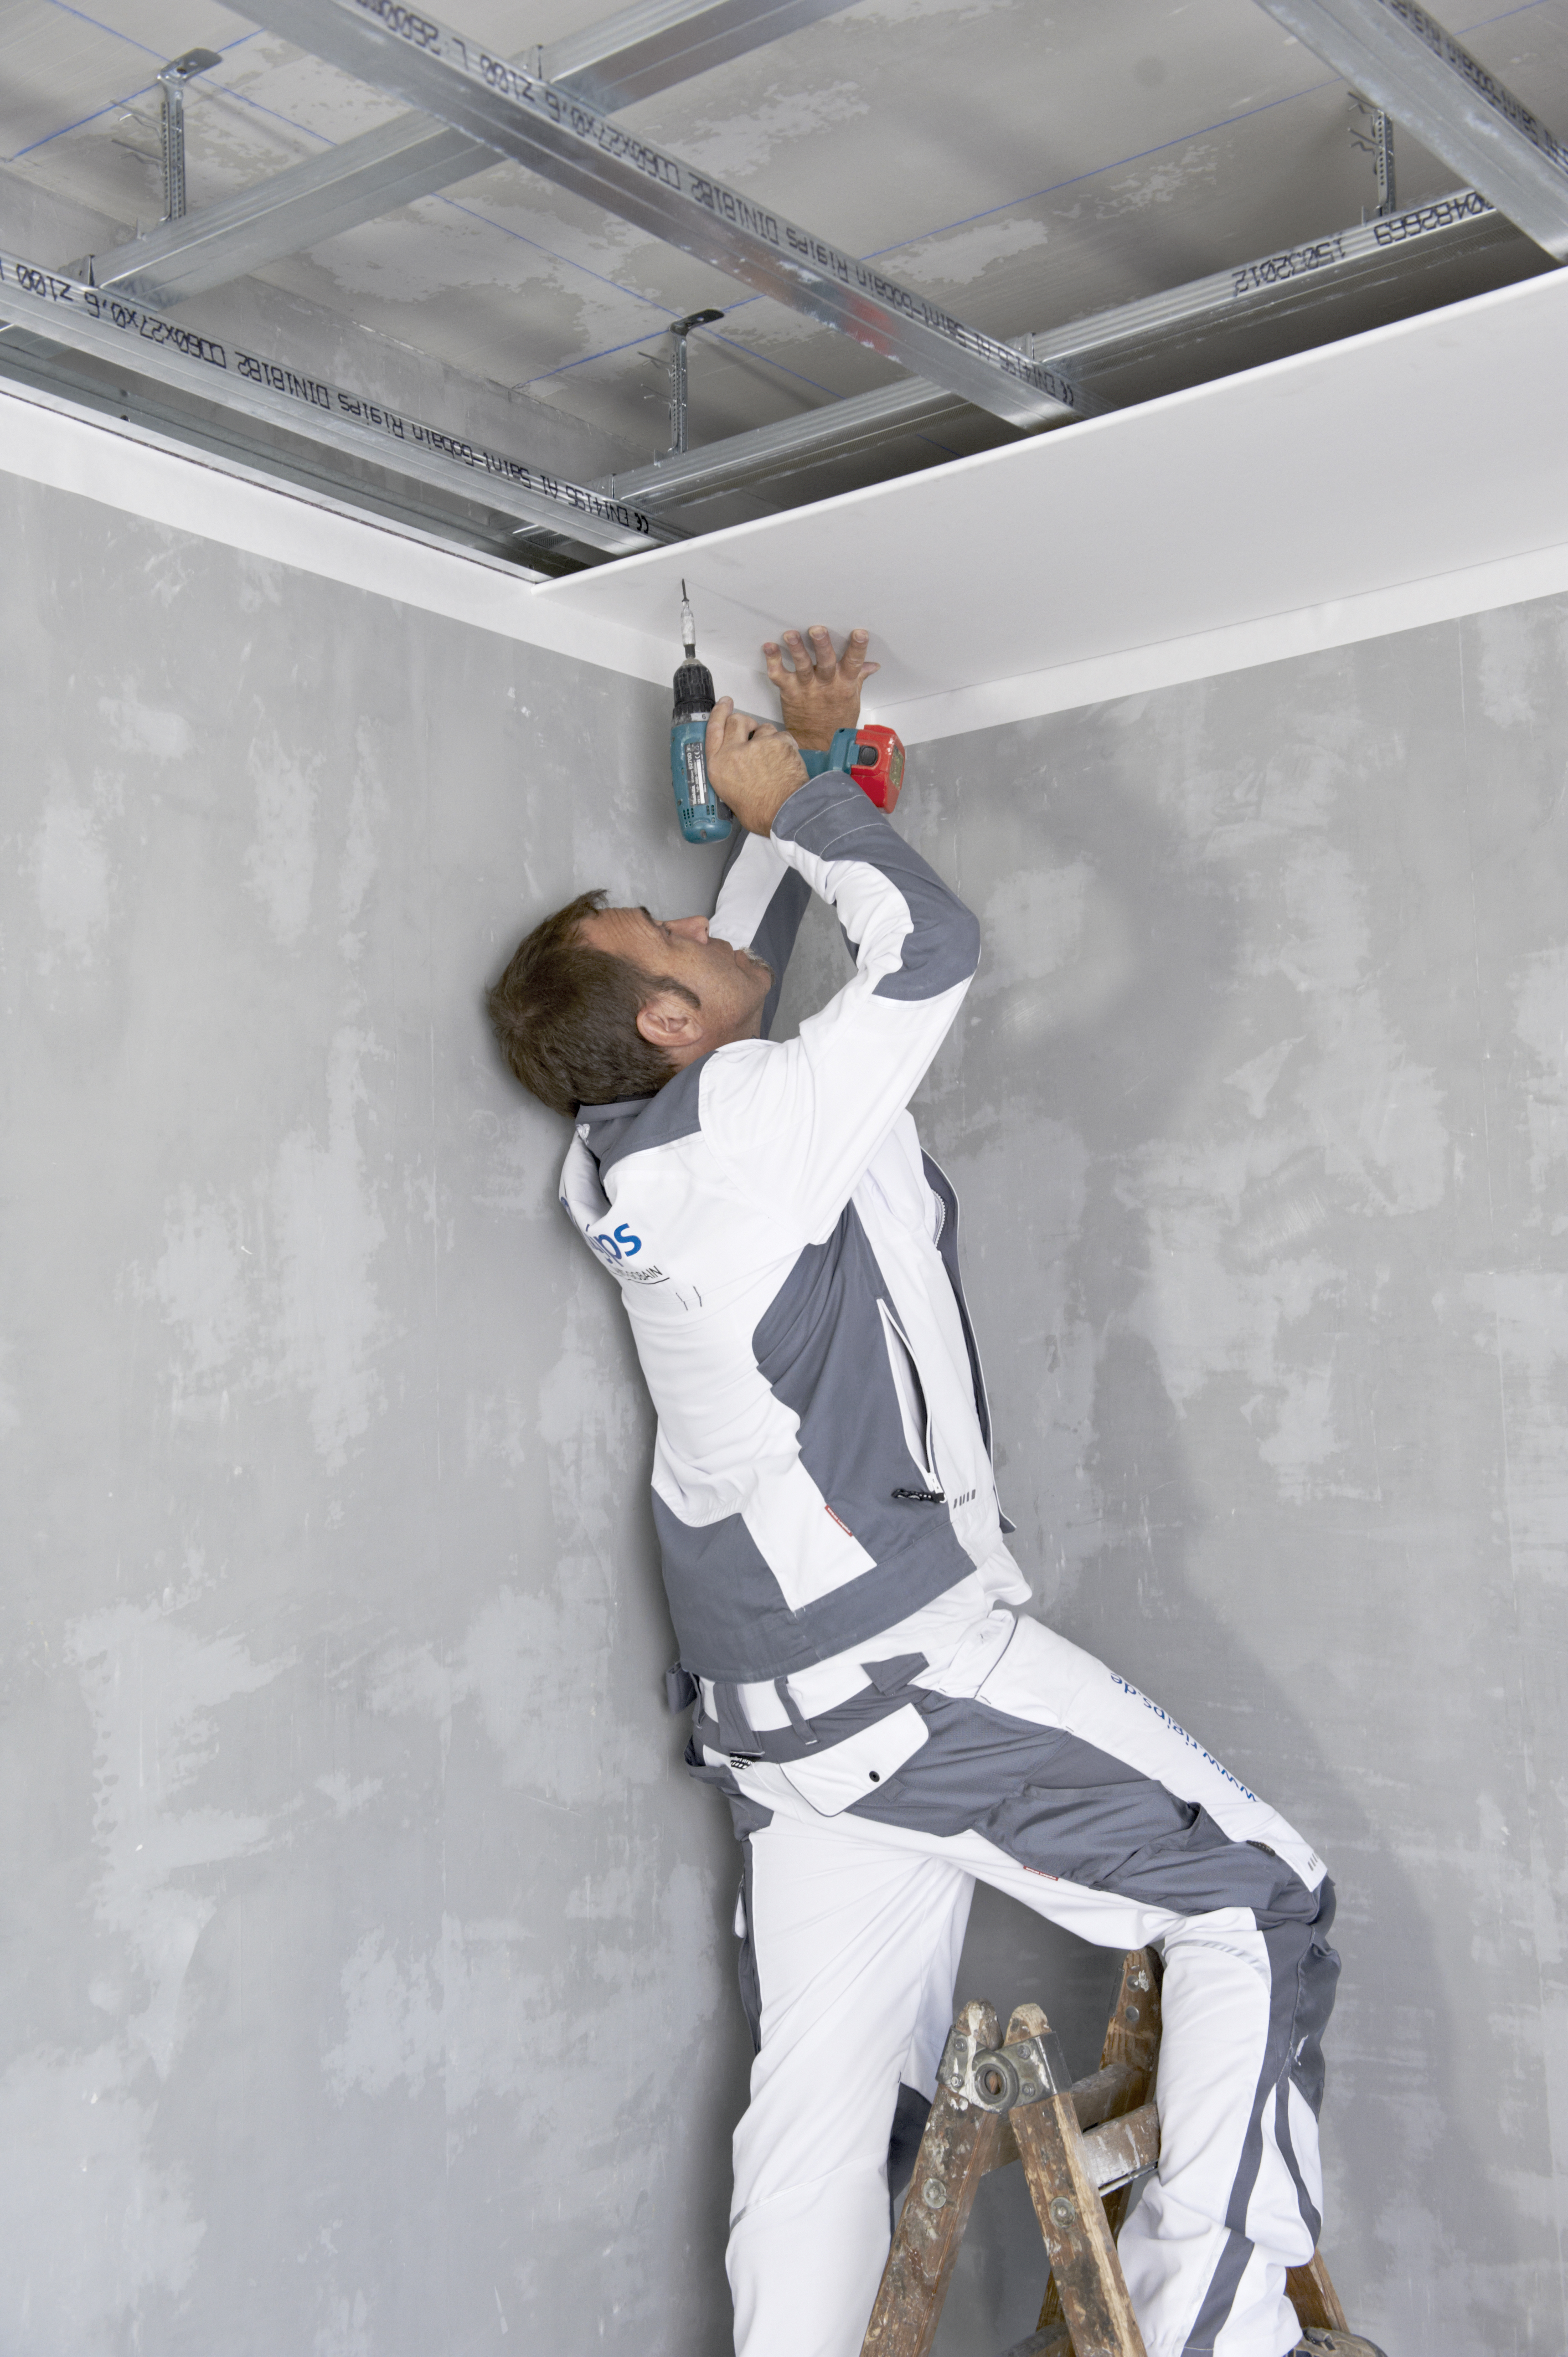 A handyman installing the ceiling